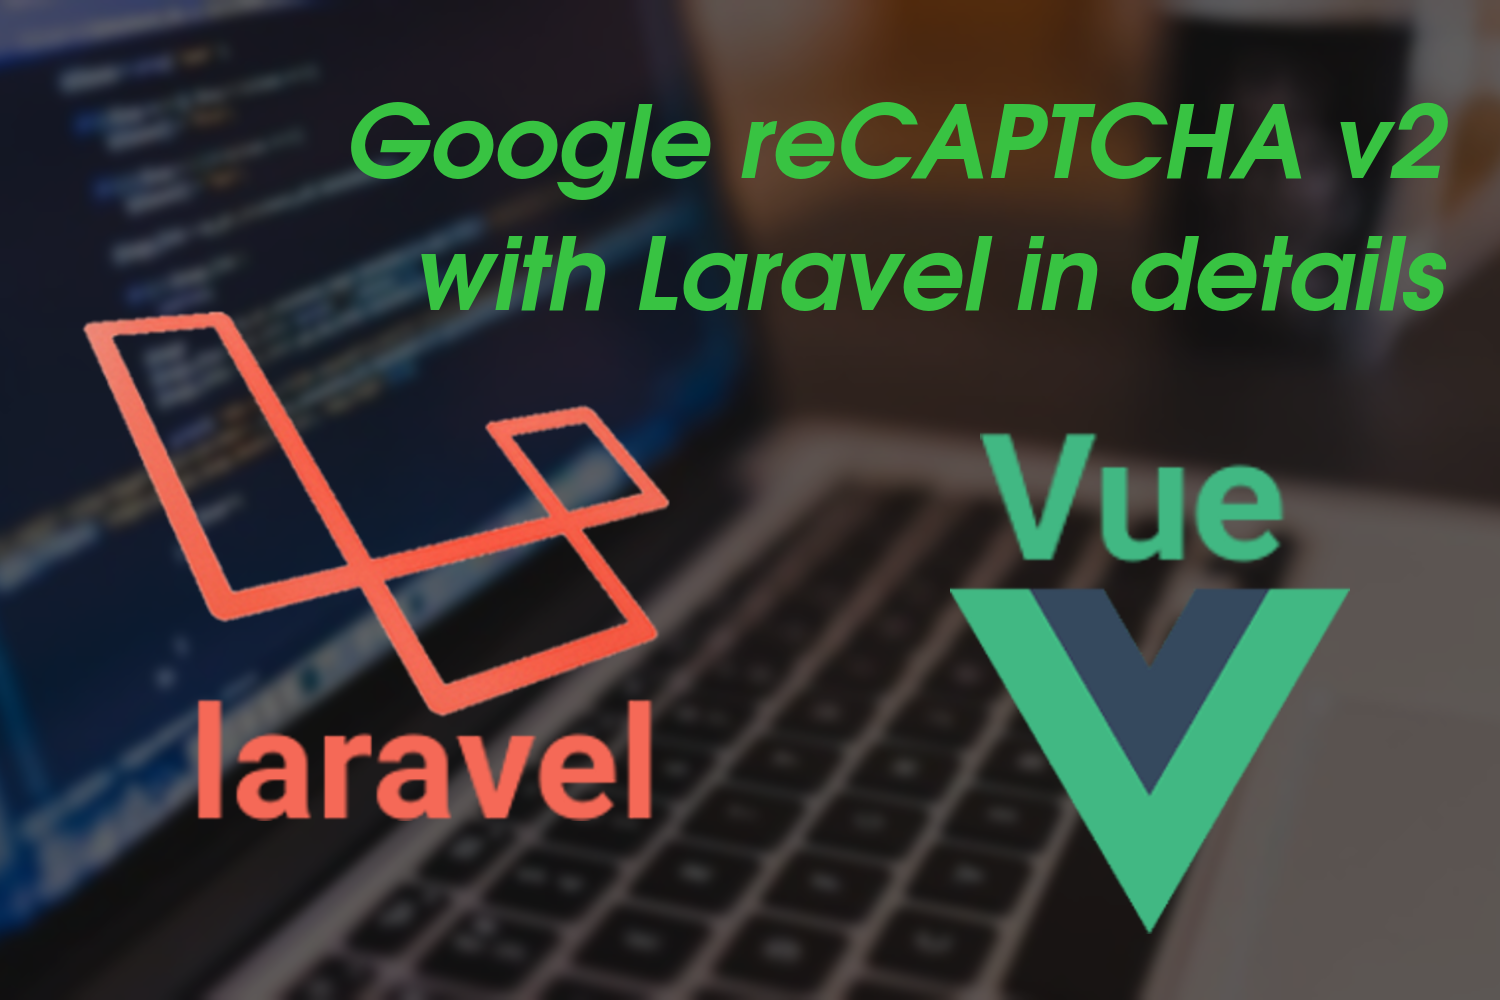 Simple integration Google reCAPTCHA v2 with Laravel in details